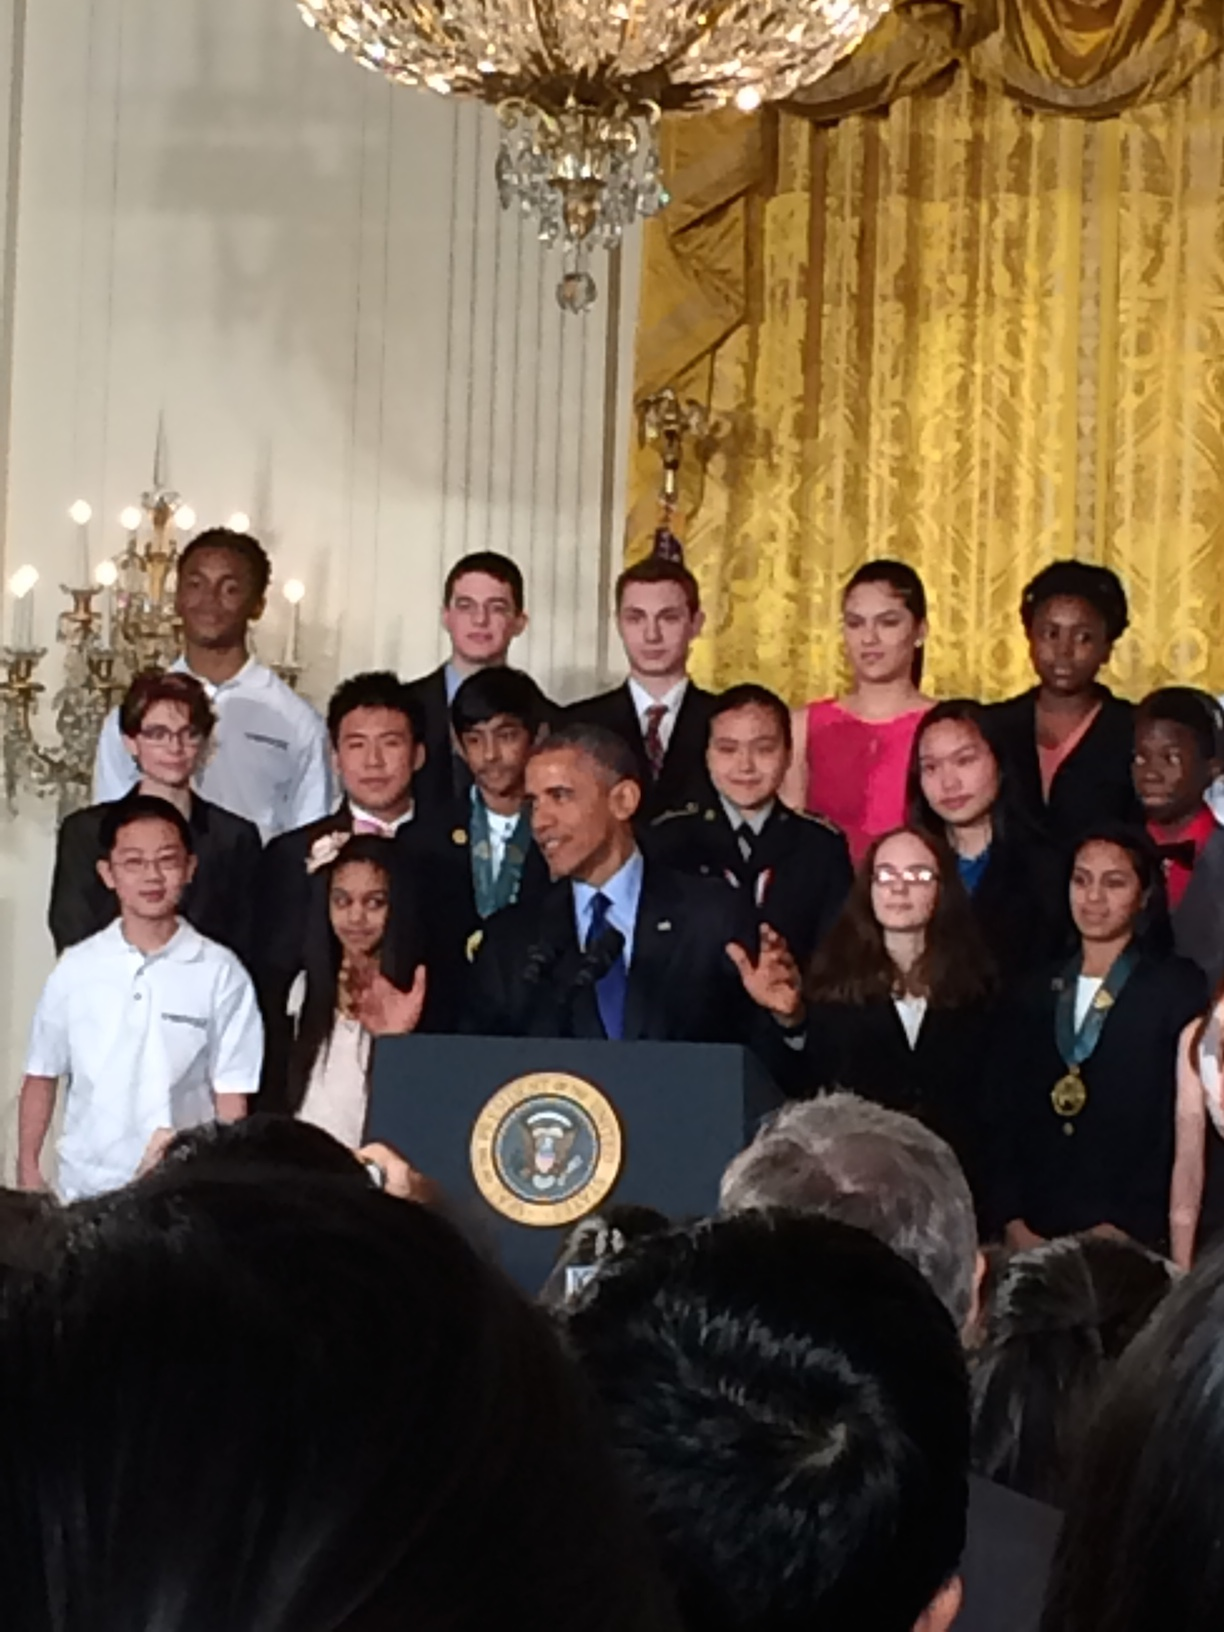 President Obama addresses the guests and exhibitors at the White House Science Fair